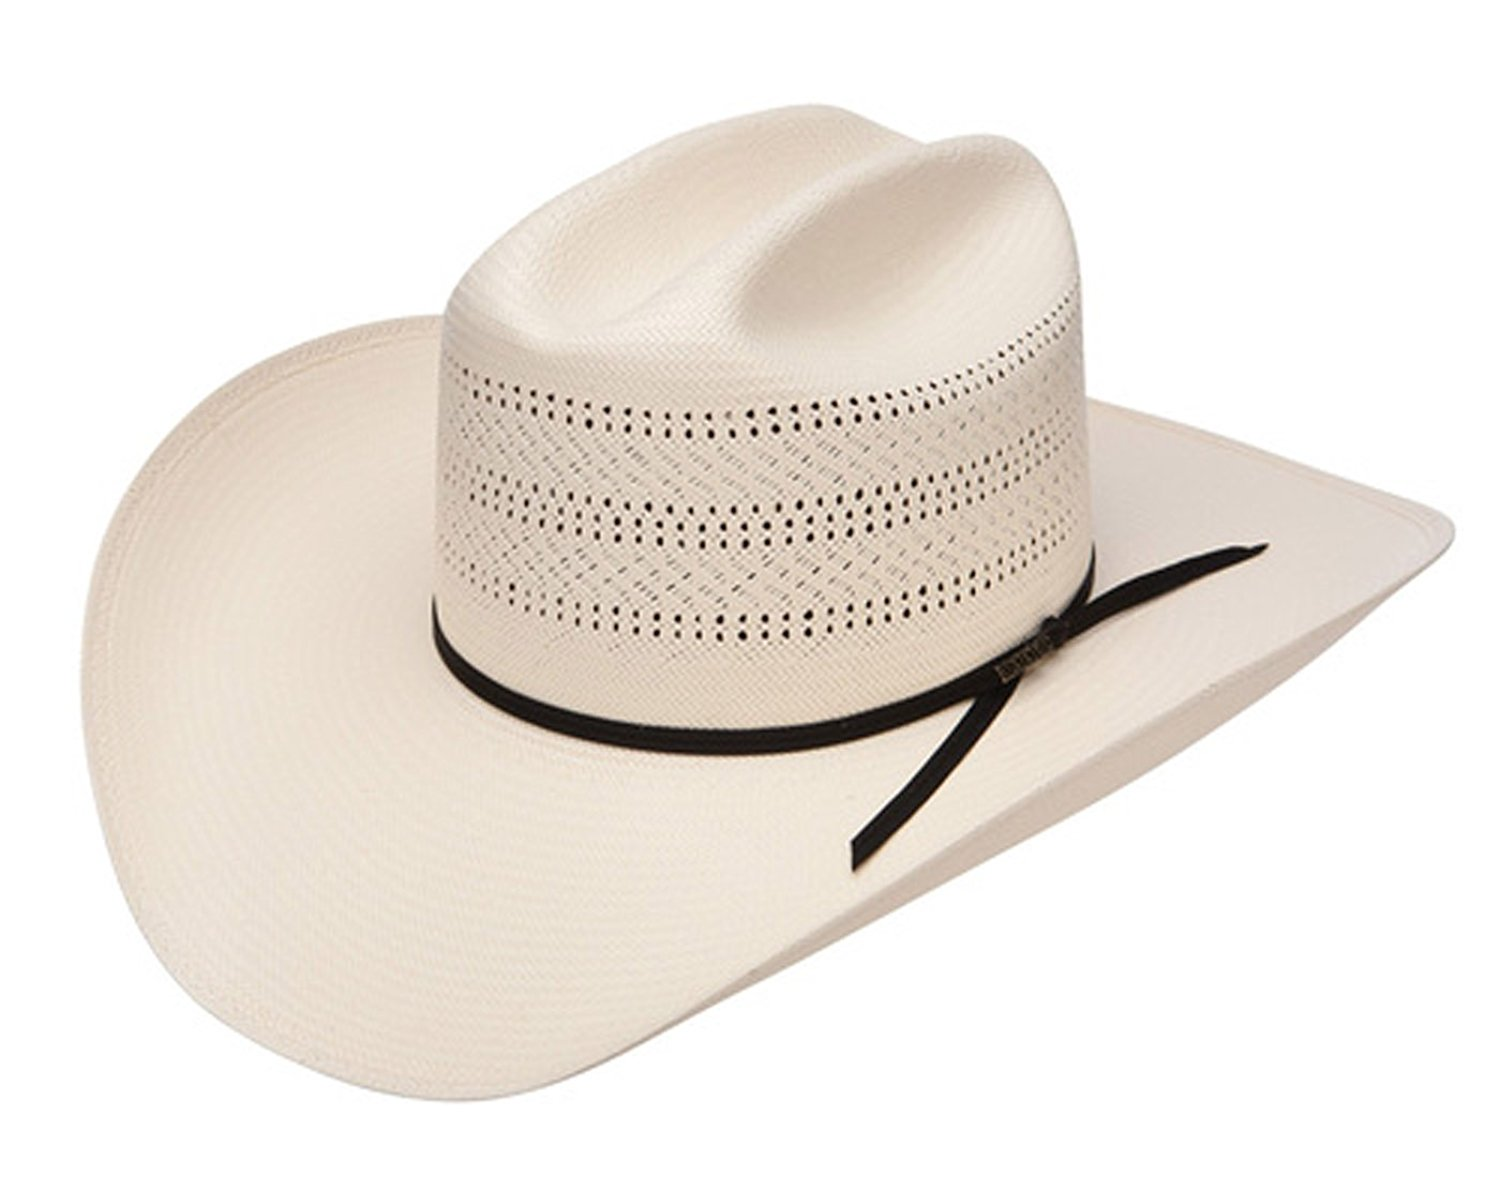 9d791bc4 Get Quotations · Stetson And Dobbs Hats RSCHAS-3042 Chase Cowboy Hat,  Natural - XL